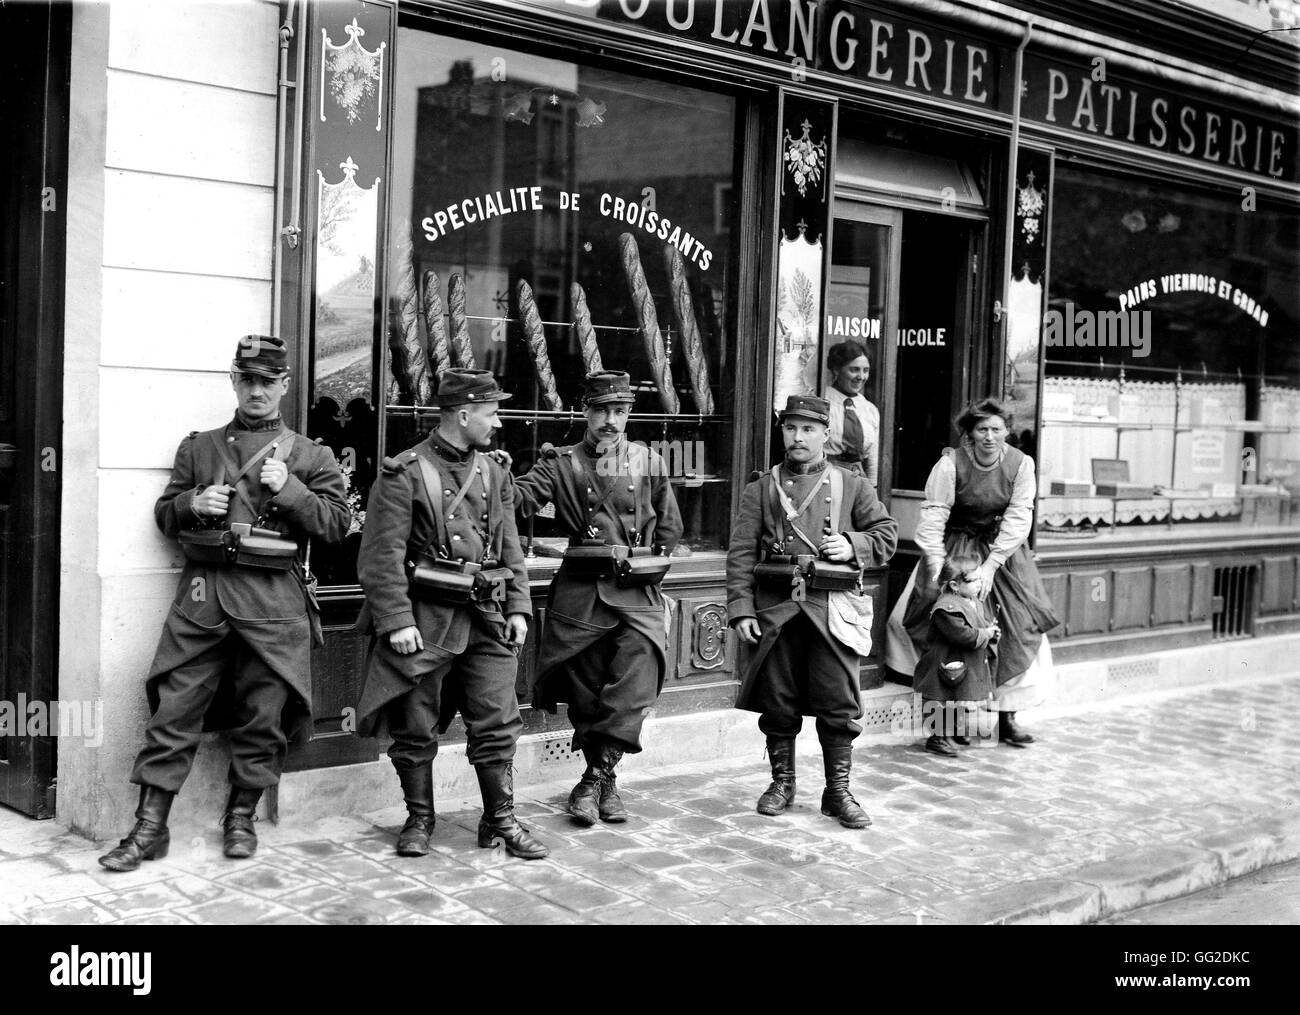 Bakers strike: soldiers called in as reinforcement May 13, 1913 France - Stock Image